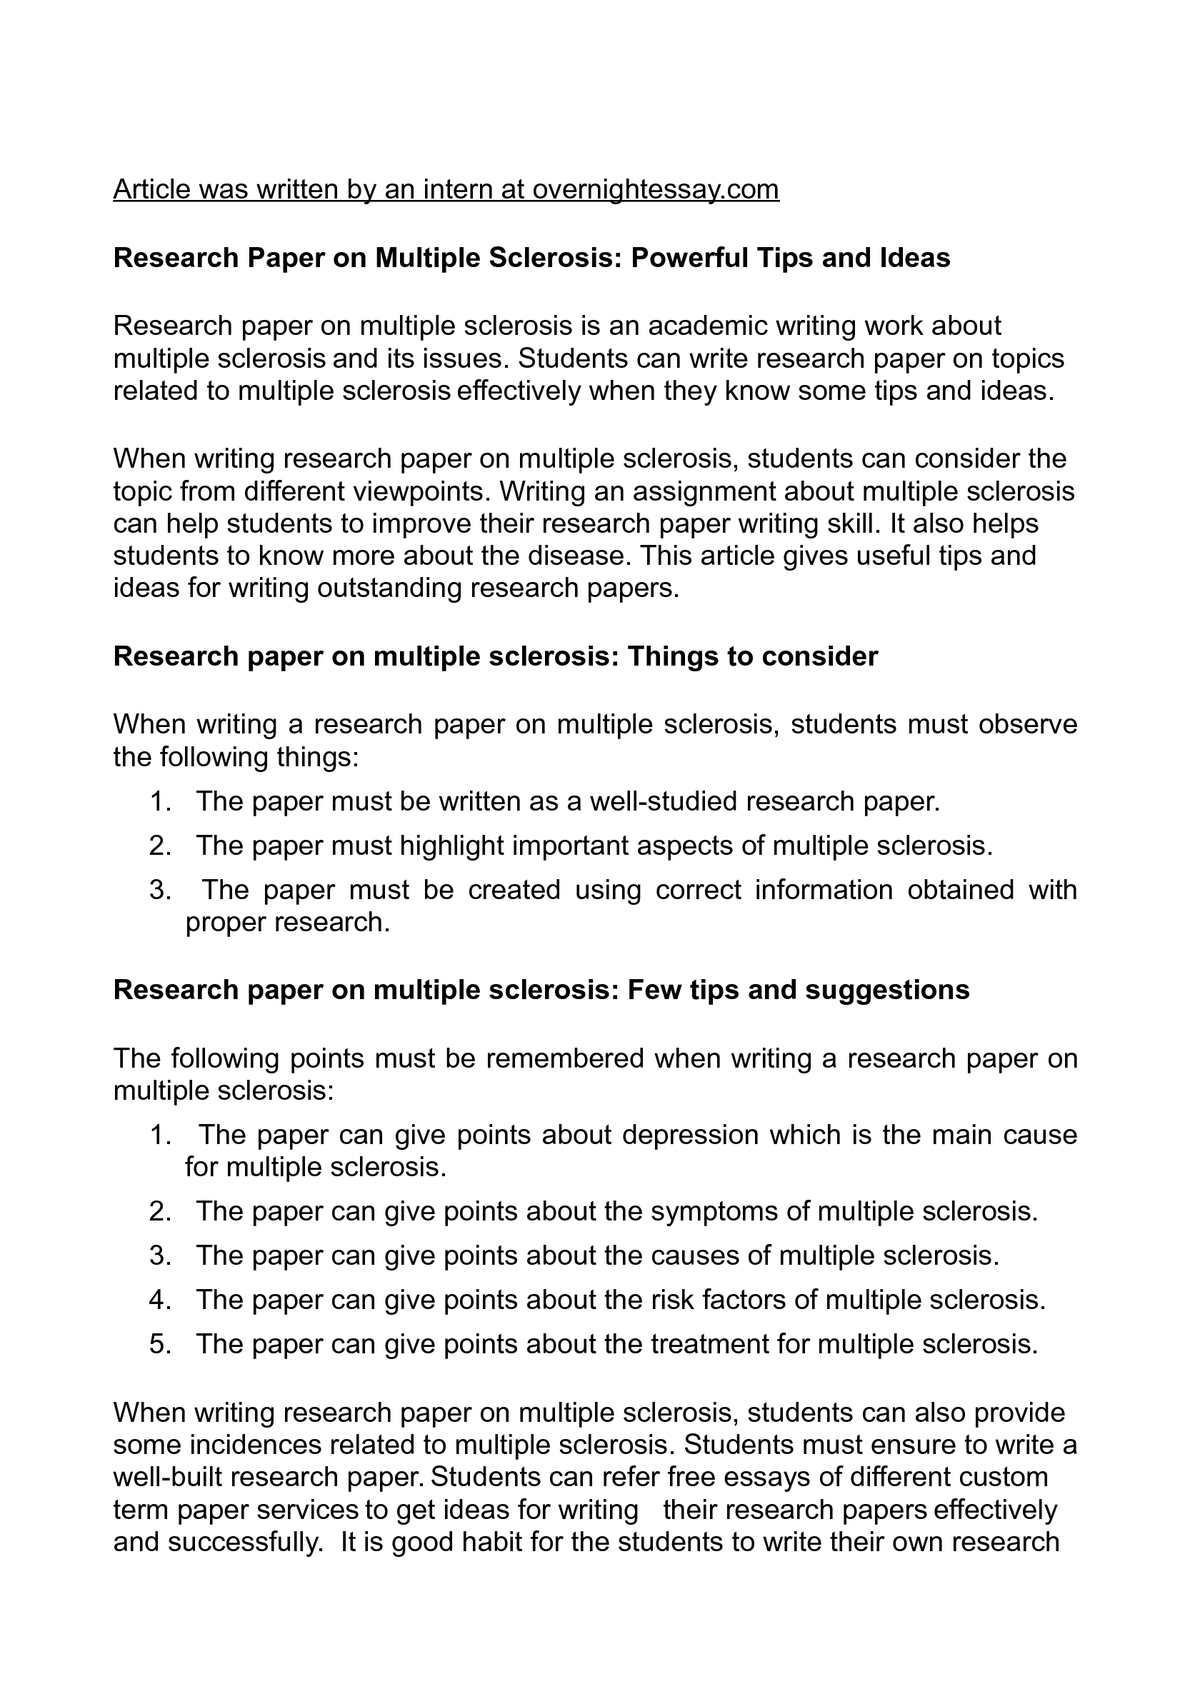 015 Research Paper How To Write Breathtaking A Hook Reference Conclusion For Pdf Full